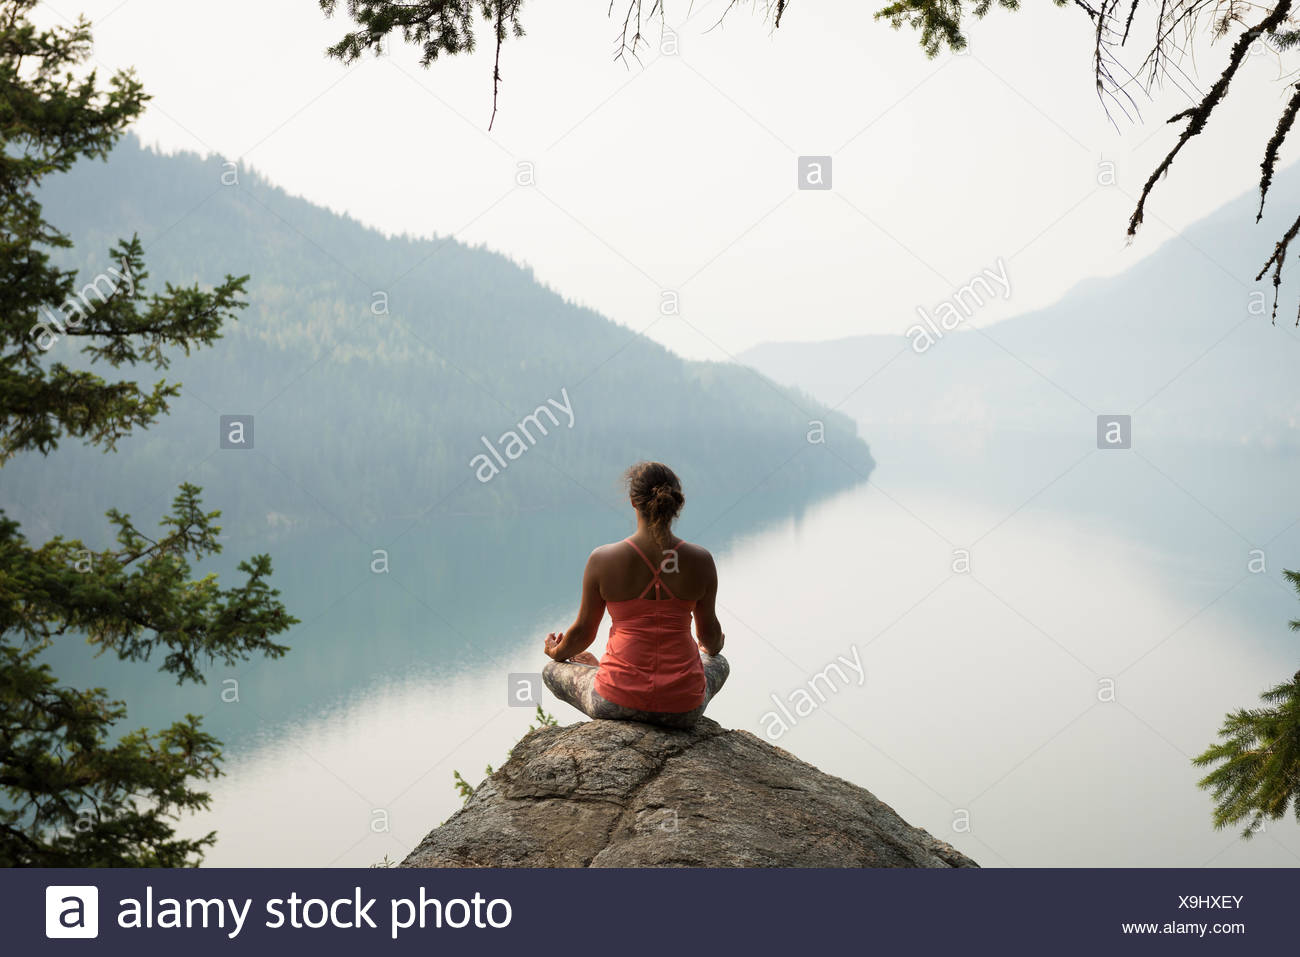 Fit woman sitting posture en méditant sur le bord d'un rocher Photo Stock